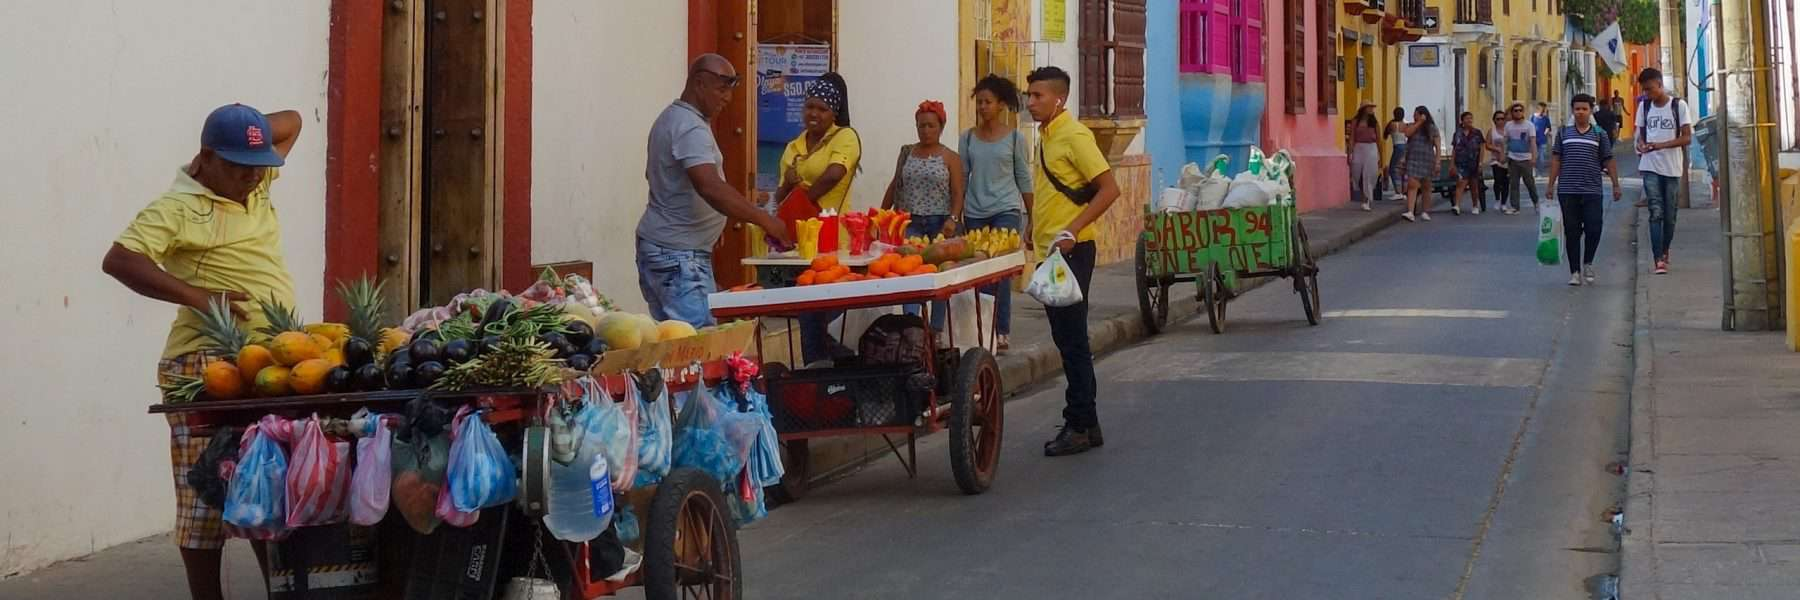 Street food vendors in Cartagena, Colombia